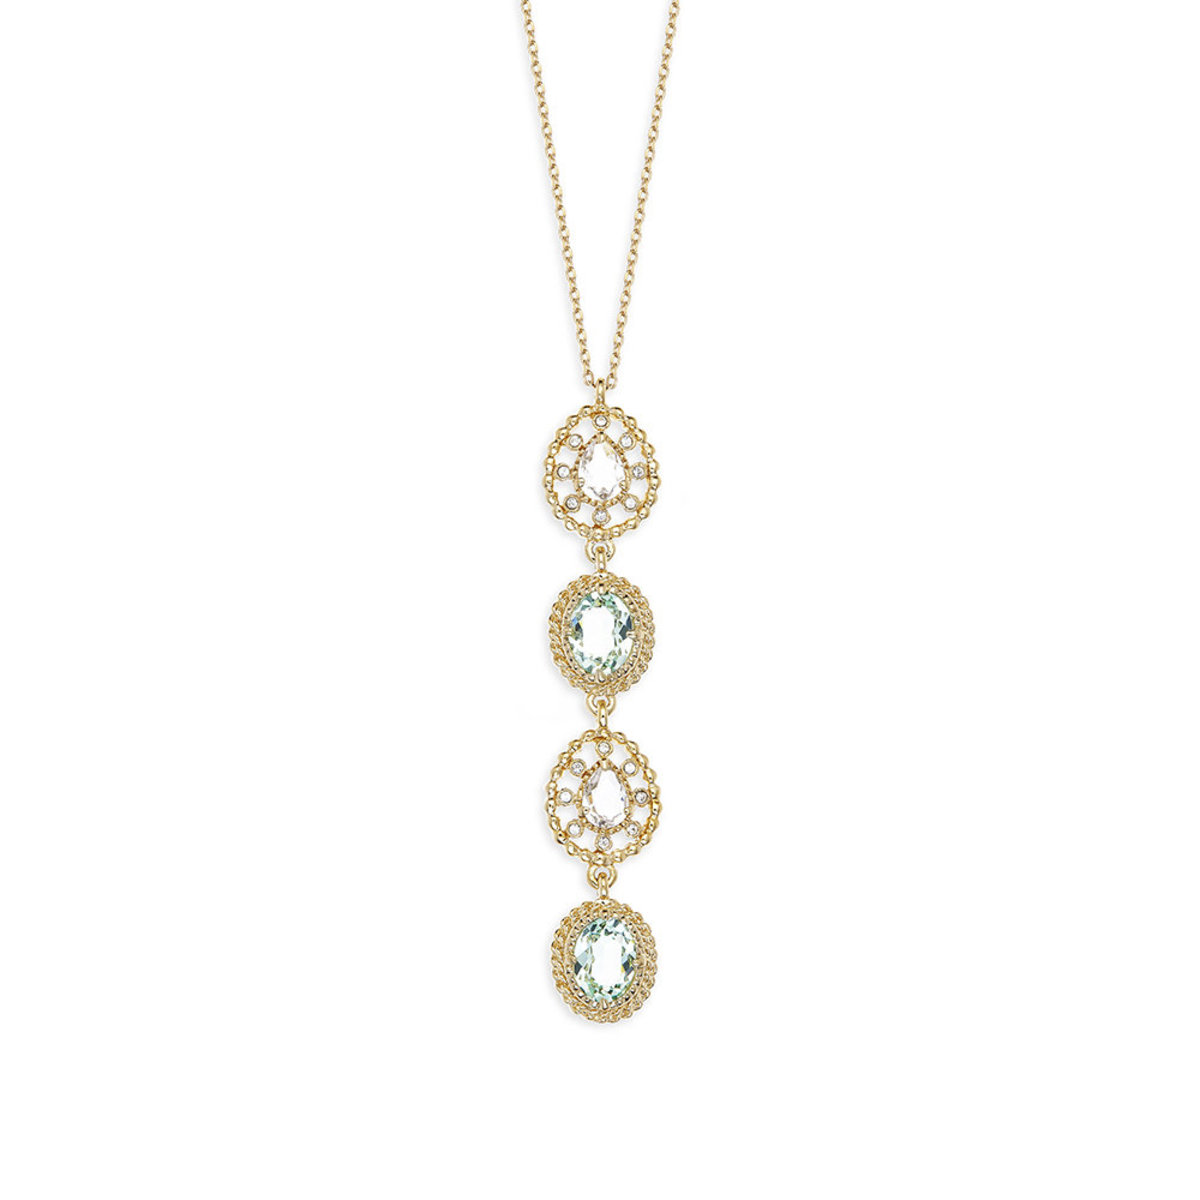 Eclat Palette: light gold plating, Swarovski chrysolite/clear crystal, pendant necklace